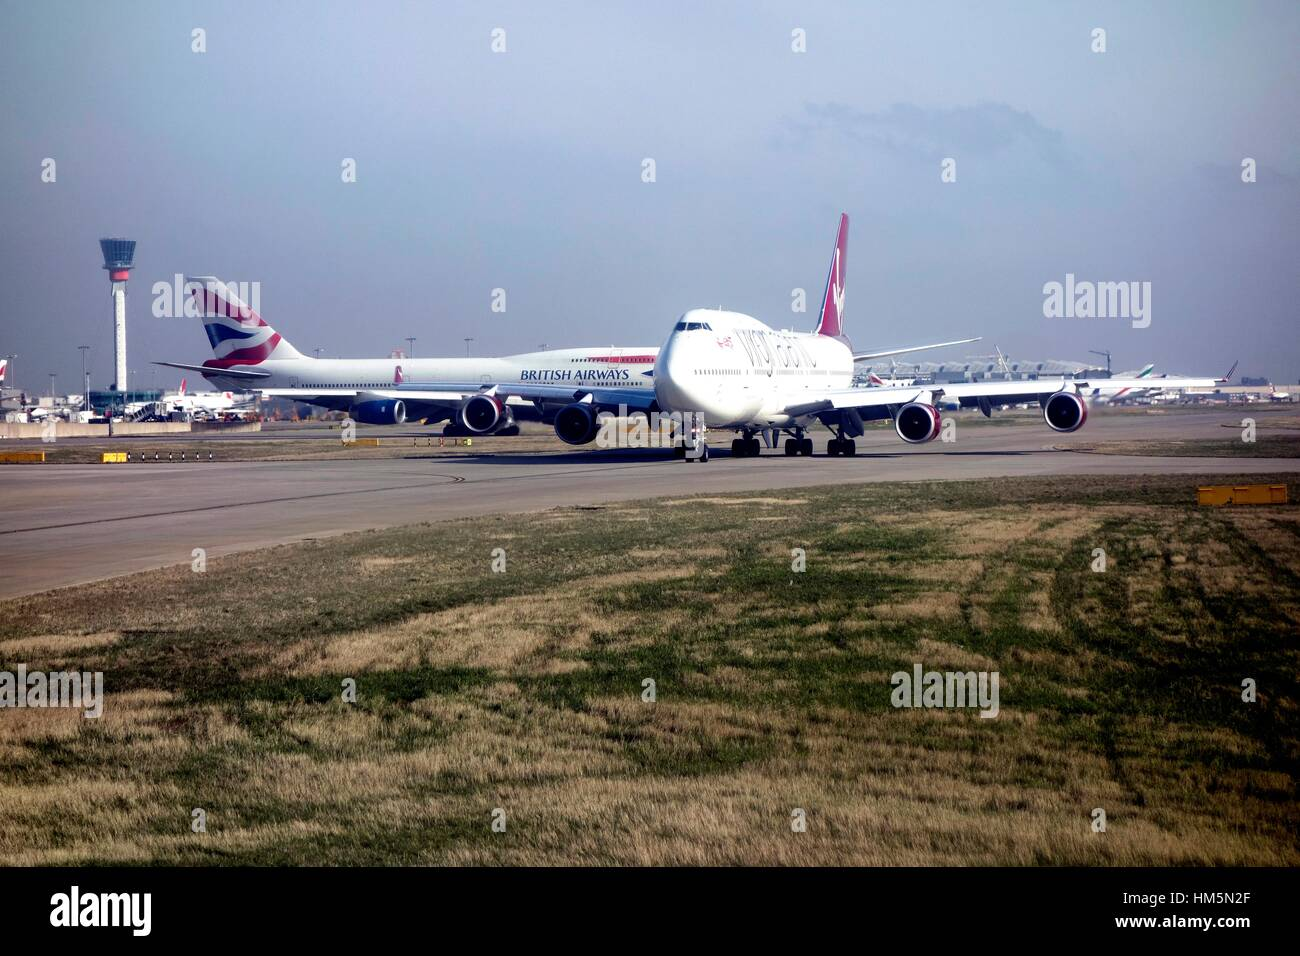 Airplanes queue for a takeoff slot at London Heathrow - Stock Image